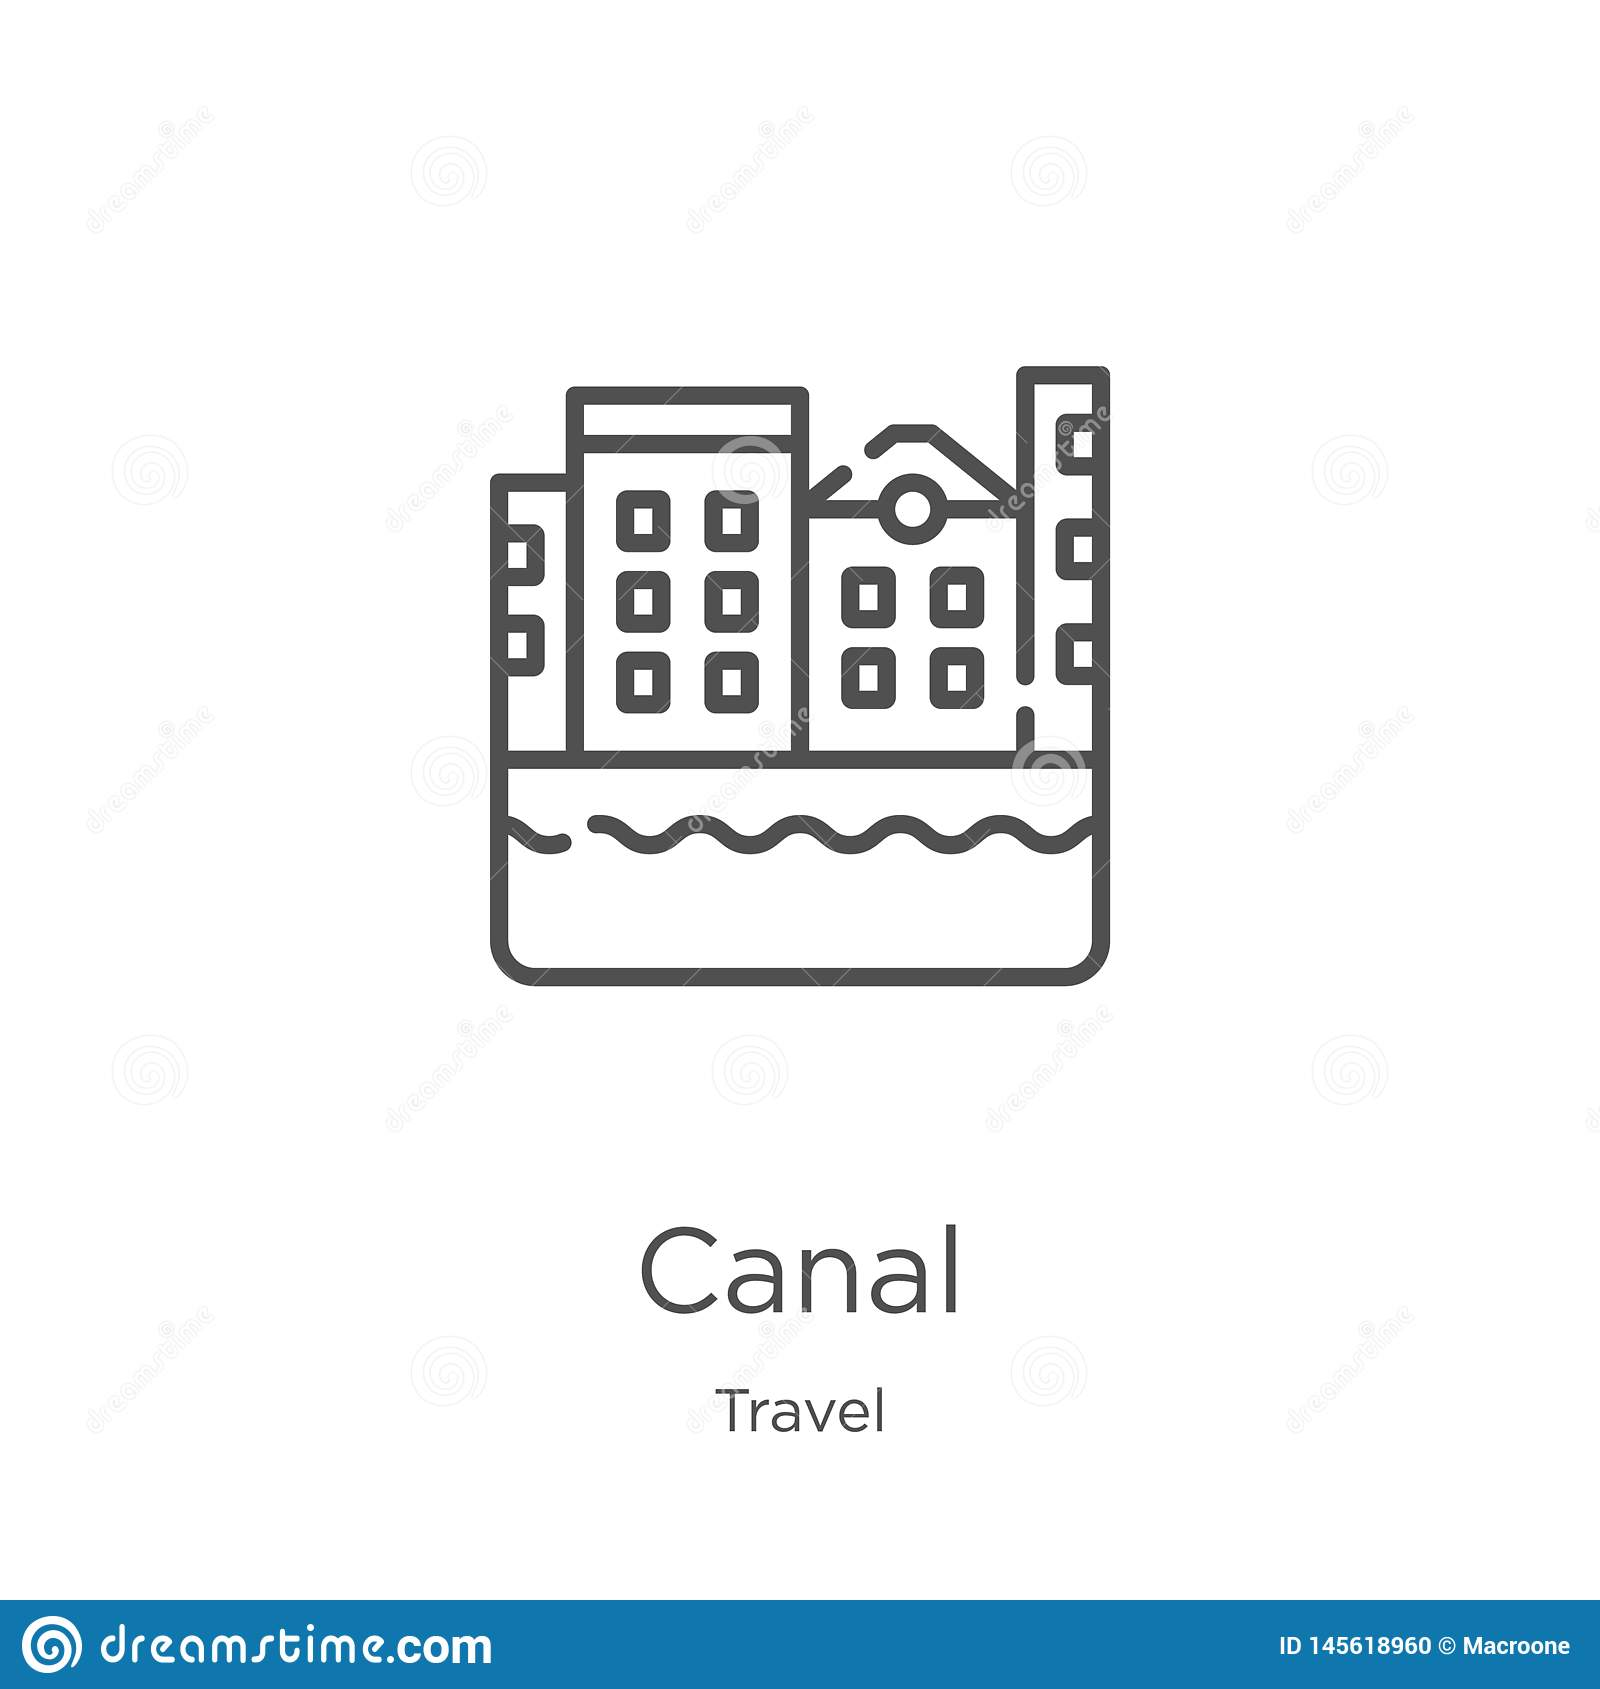 canal icon vector from travel collection. Thin line canal outline icon vector illustration. Outline, thin line canal icon for